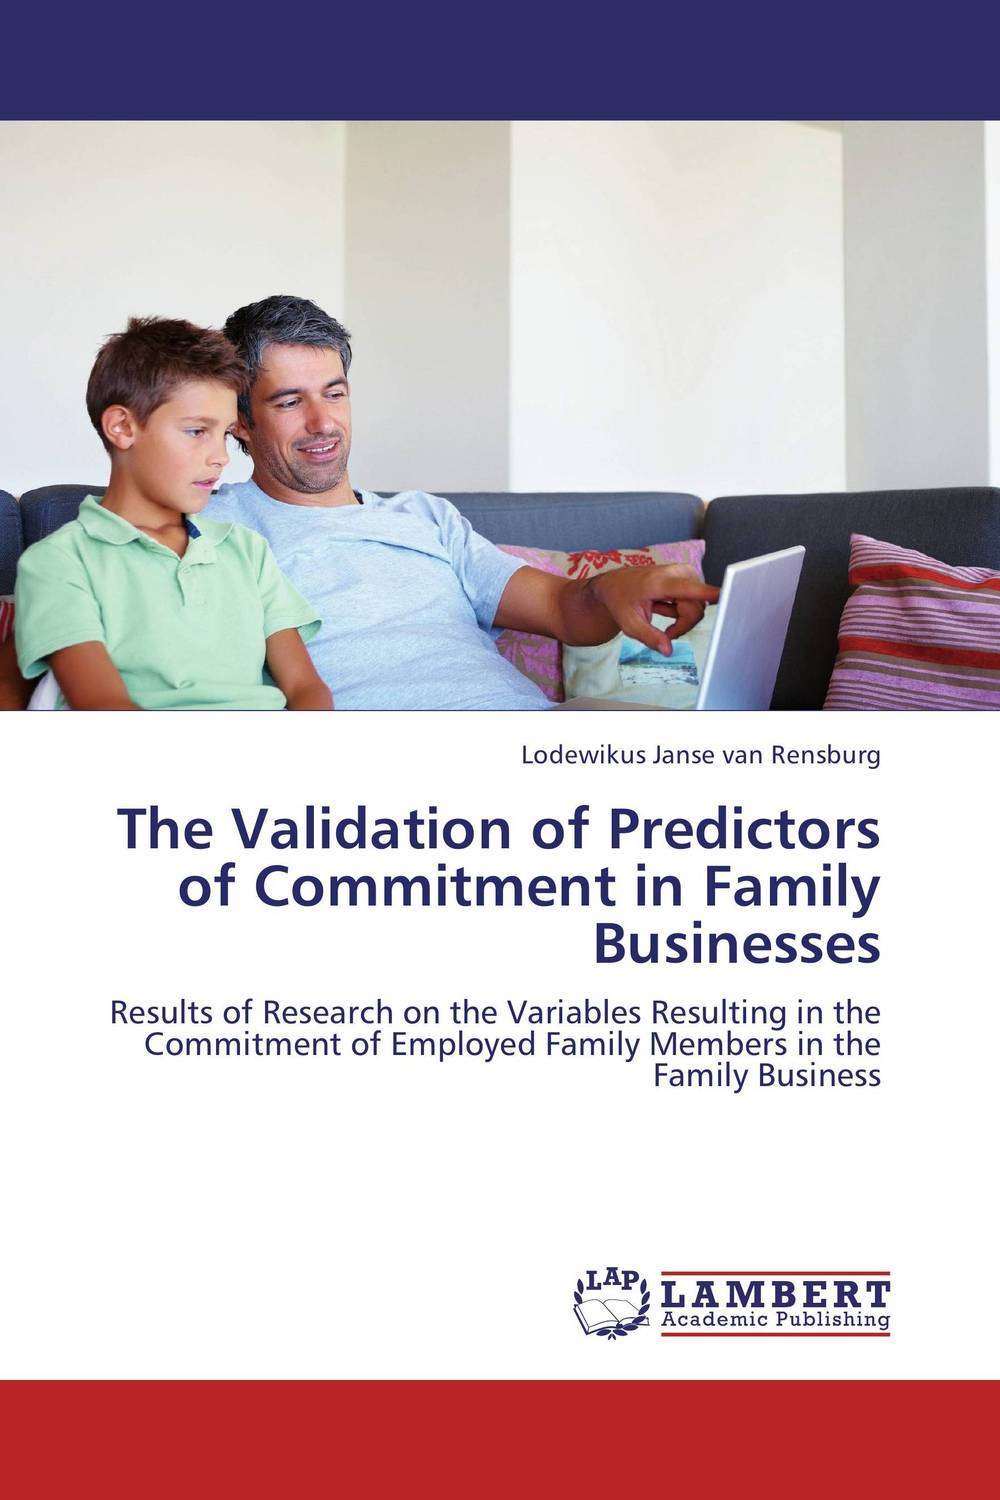 The Validation of Predictors of Commitment in Family Businesses changing attitude of family towards women in family business